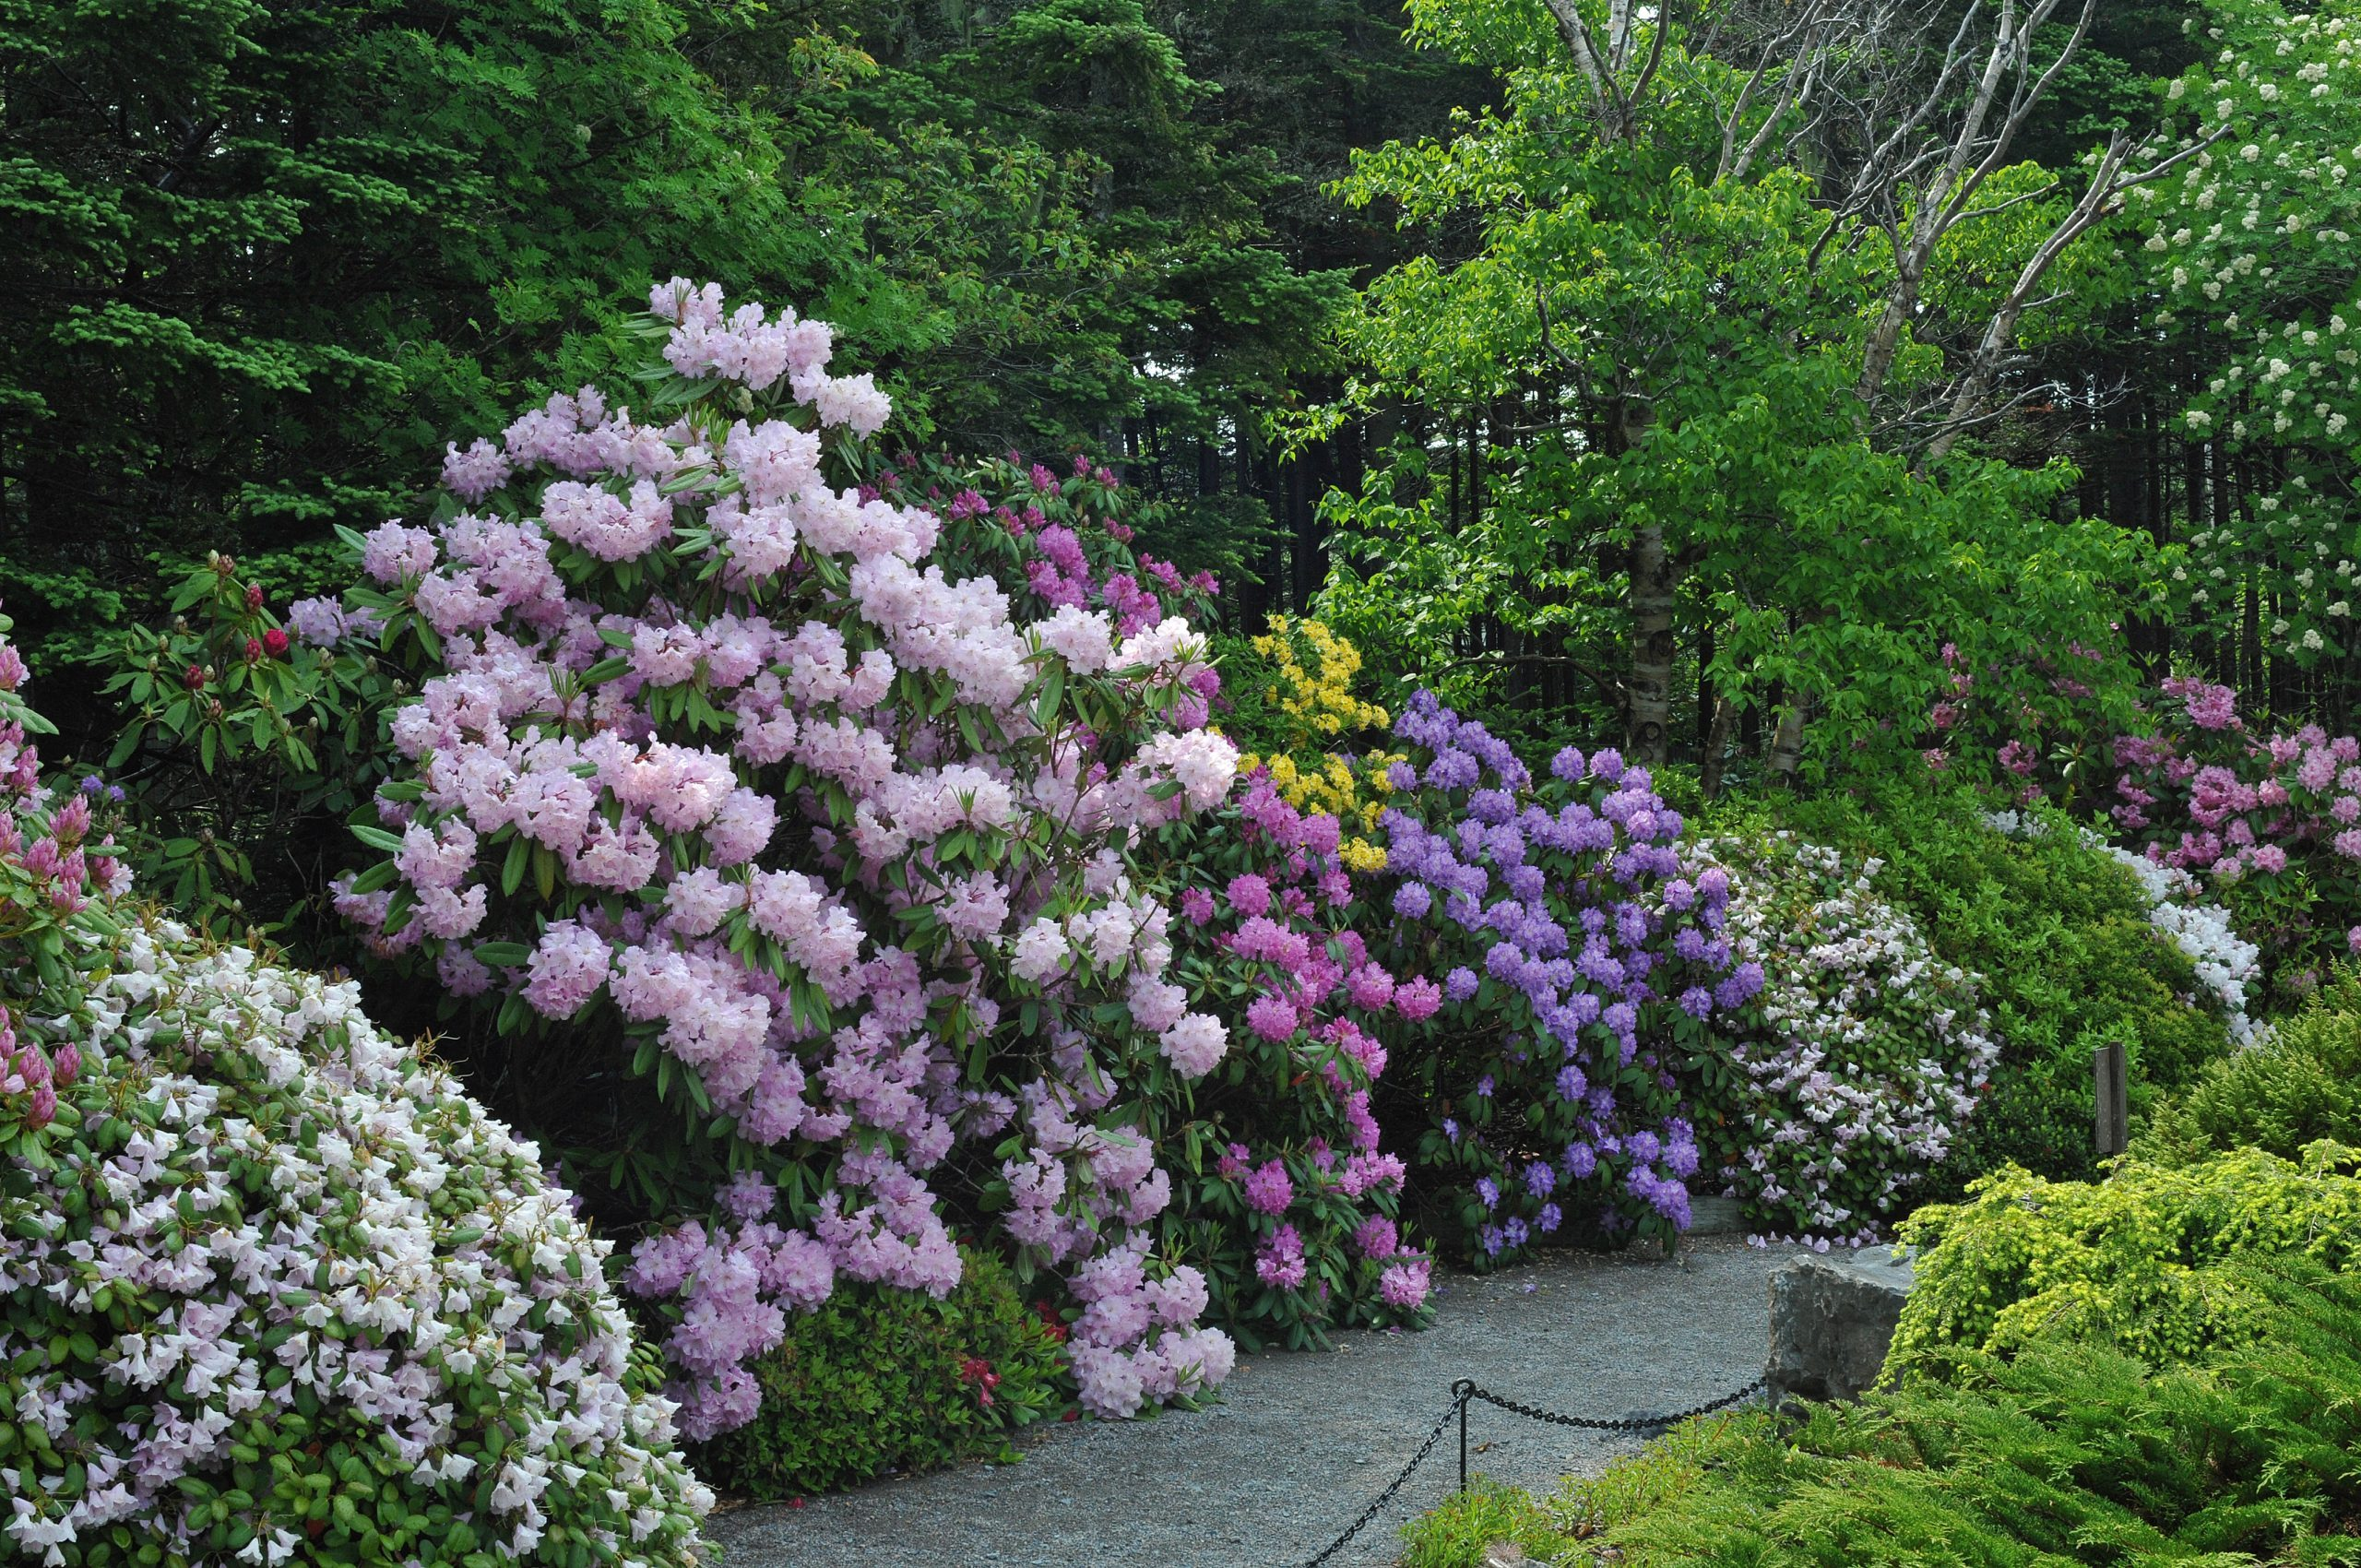 Newfoundland: Mun Botanical Garden Rhododendrons Credit Todd Boland